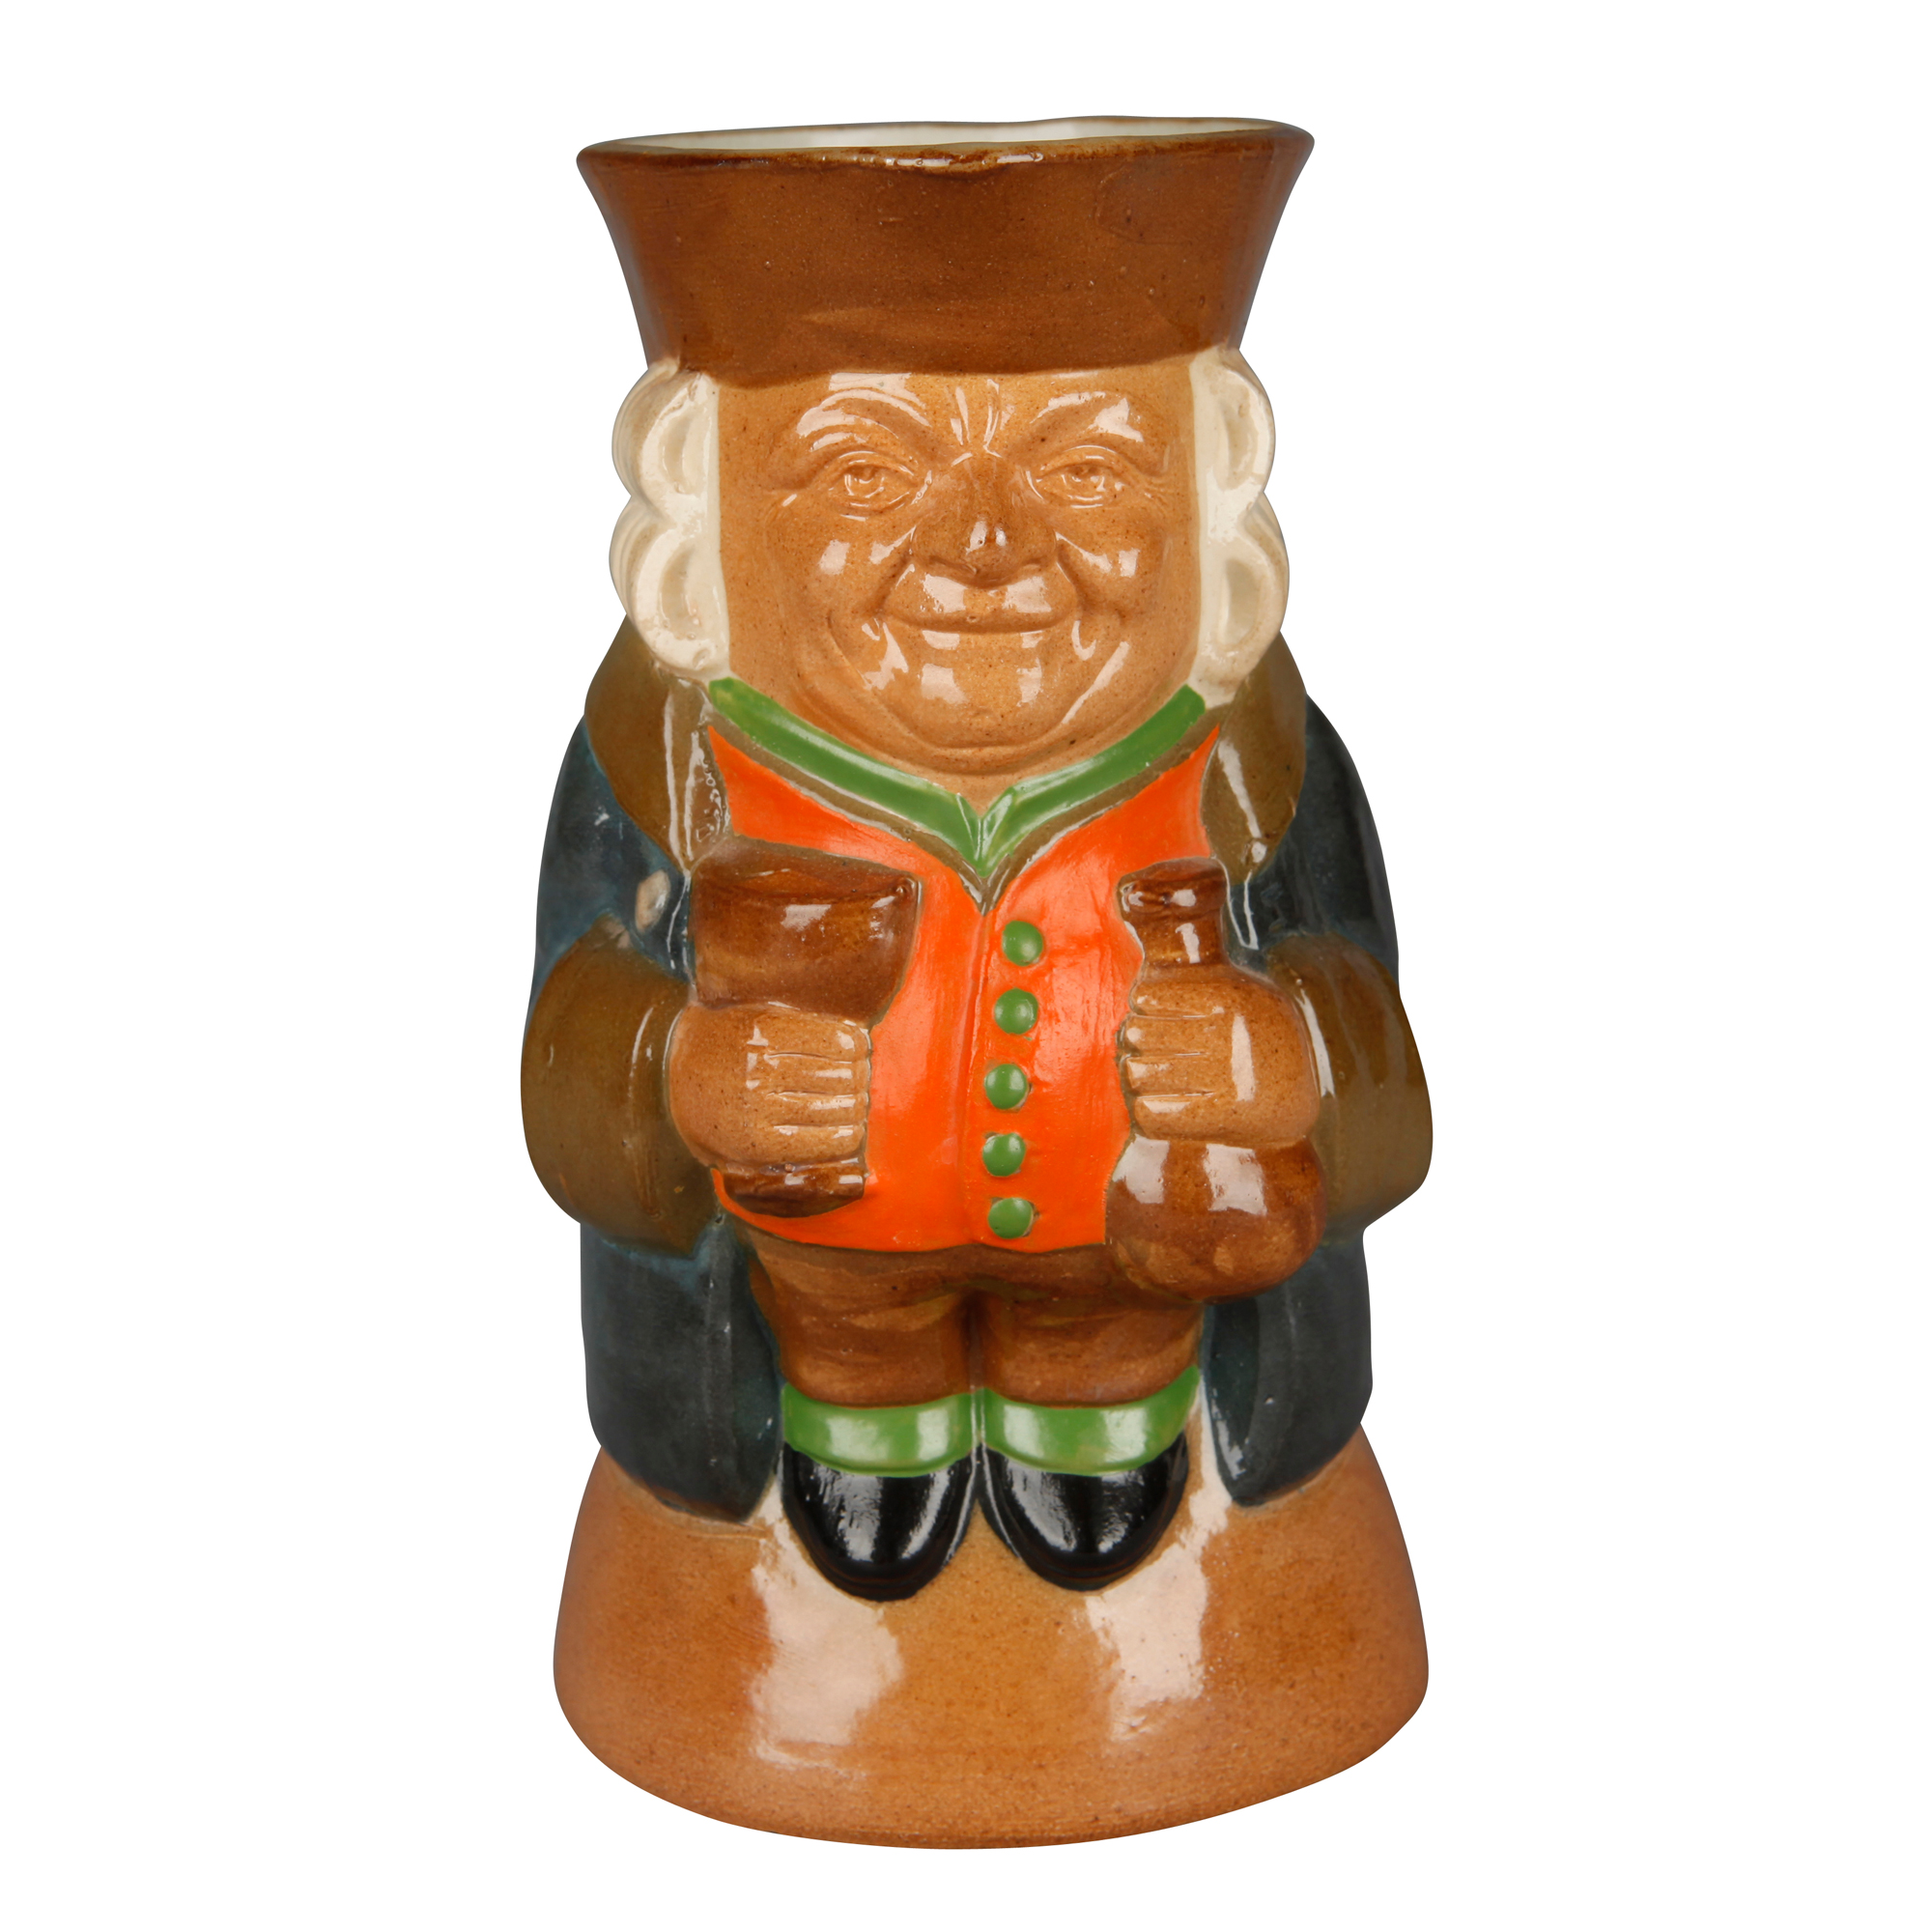 Simeon Toby Jug - Standing Man Smiling Color Variation SMCV7 - Simeon Toby